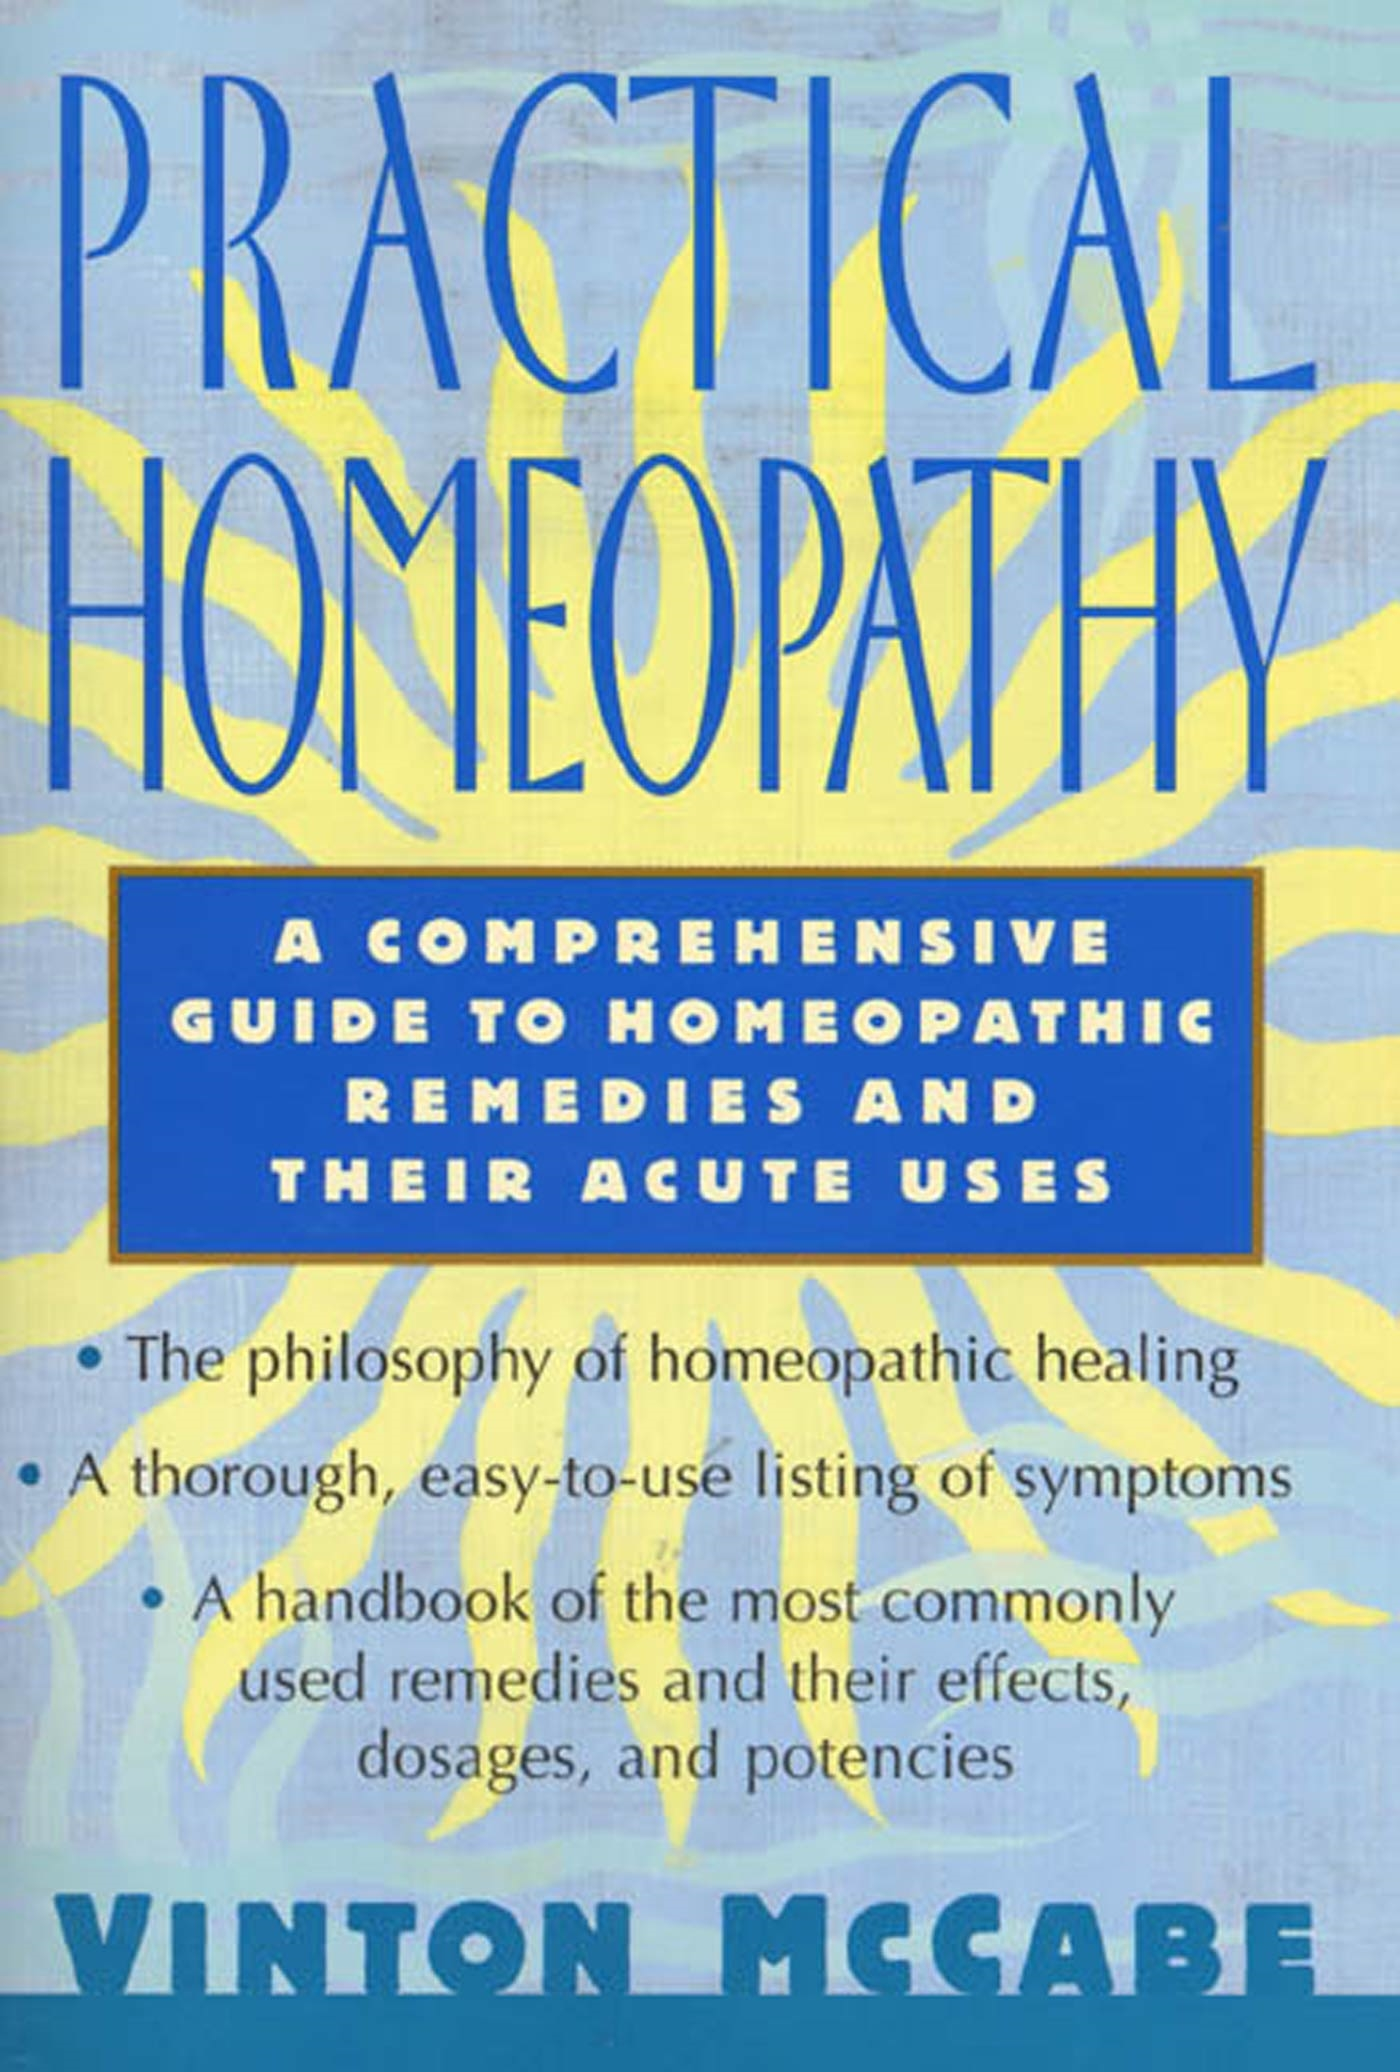 practical homeopathy a comprehensive guide to homeopathic remedies rh walmart com guide to homeopathic remedies for the birth bag a complete guide to homeopathic remedies